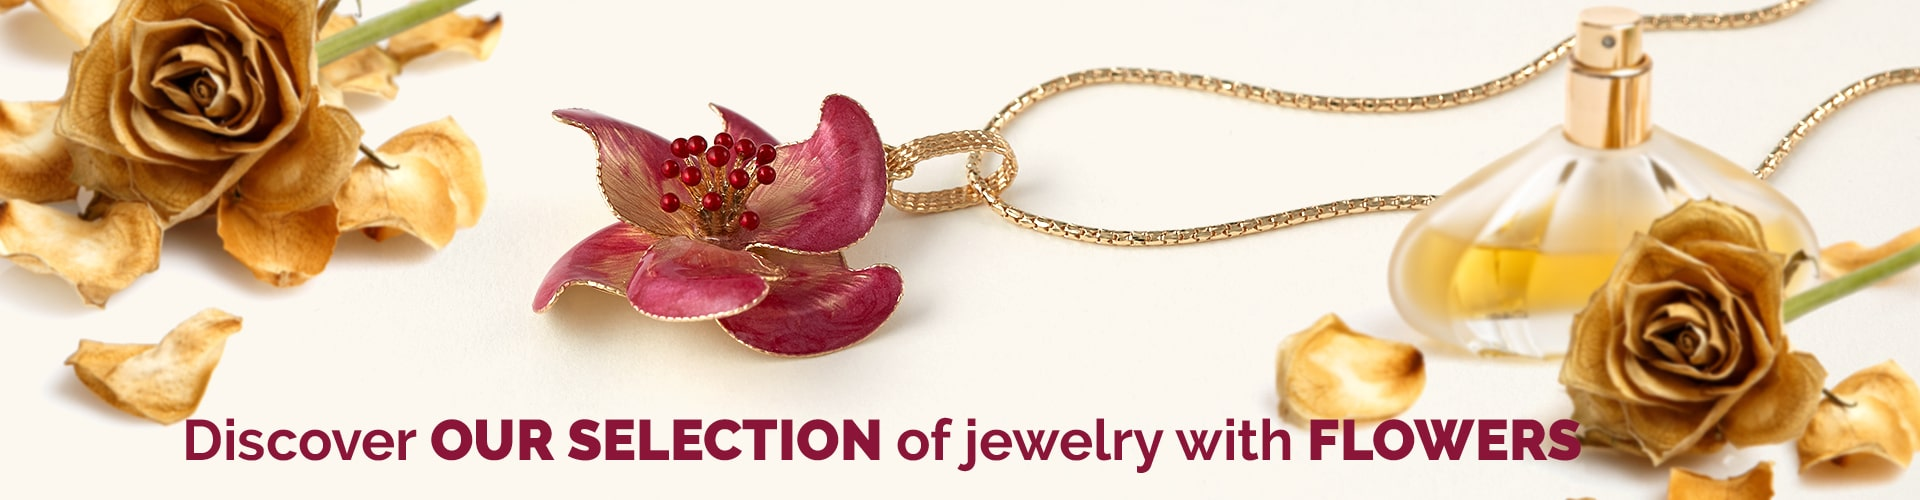 Jewels with Flowers